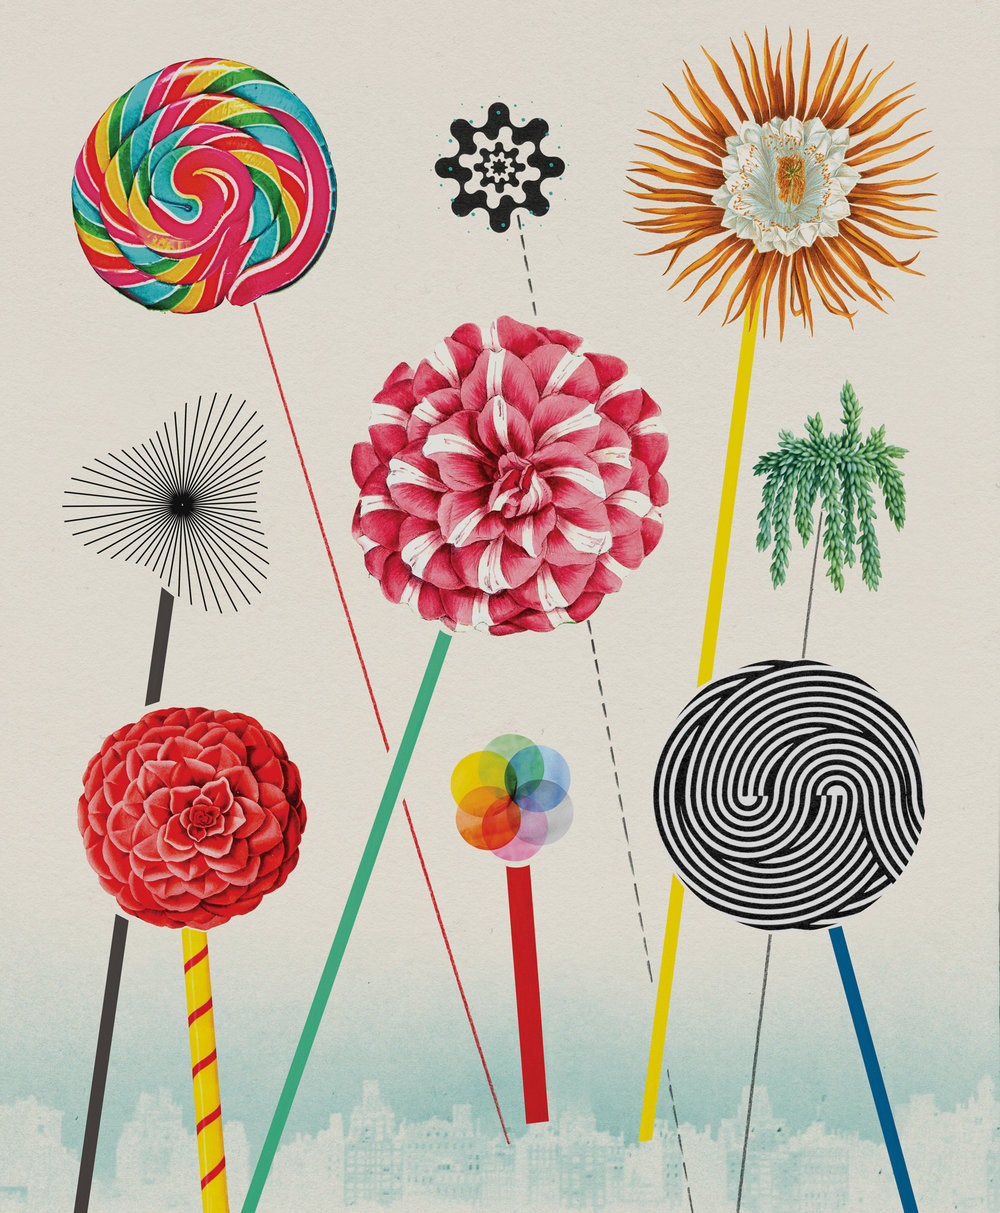 Things to Celebrate - illustration by VALERO DOVAL.